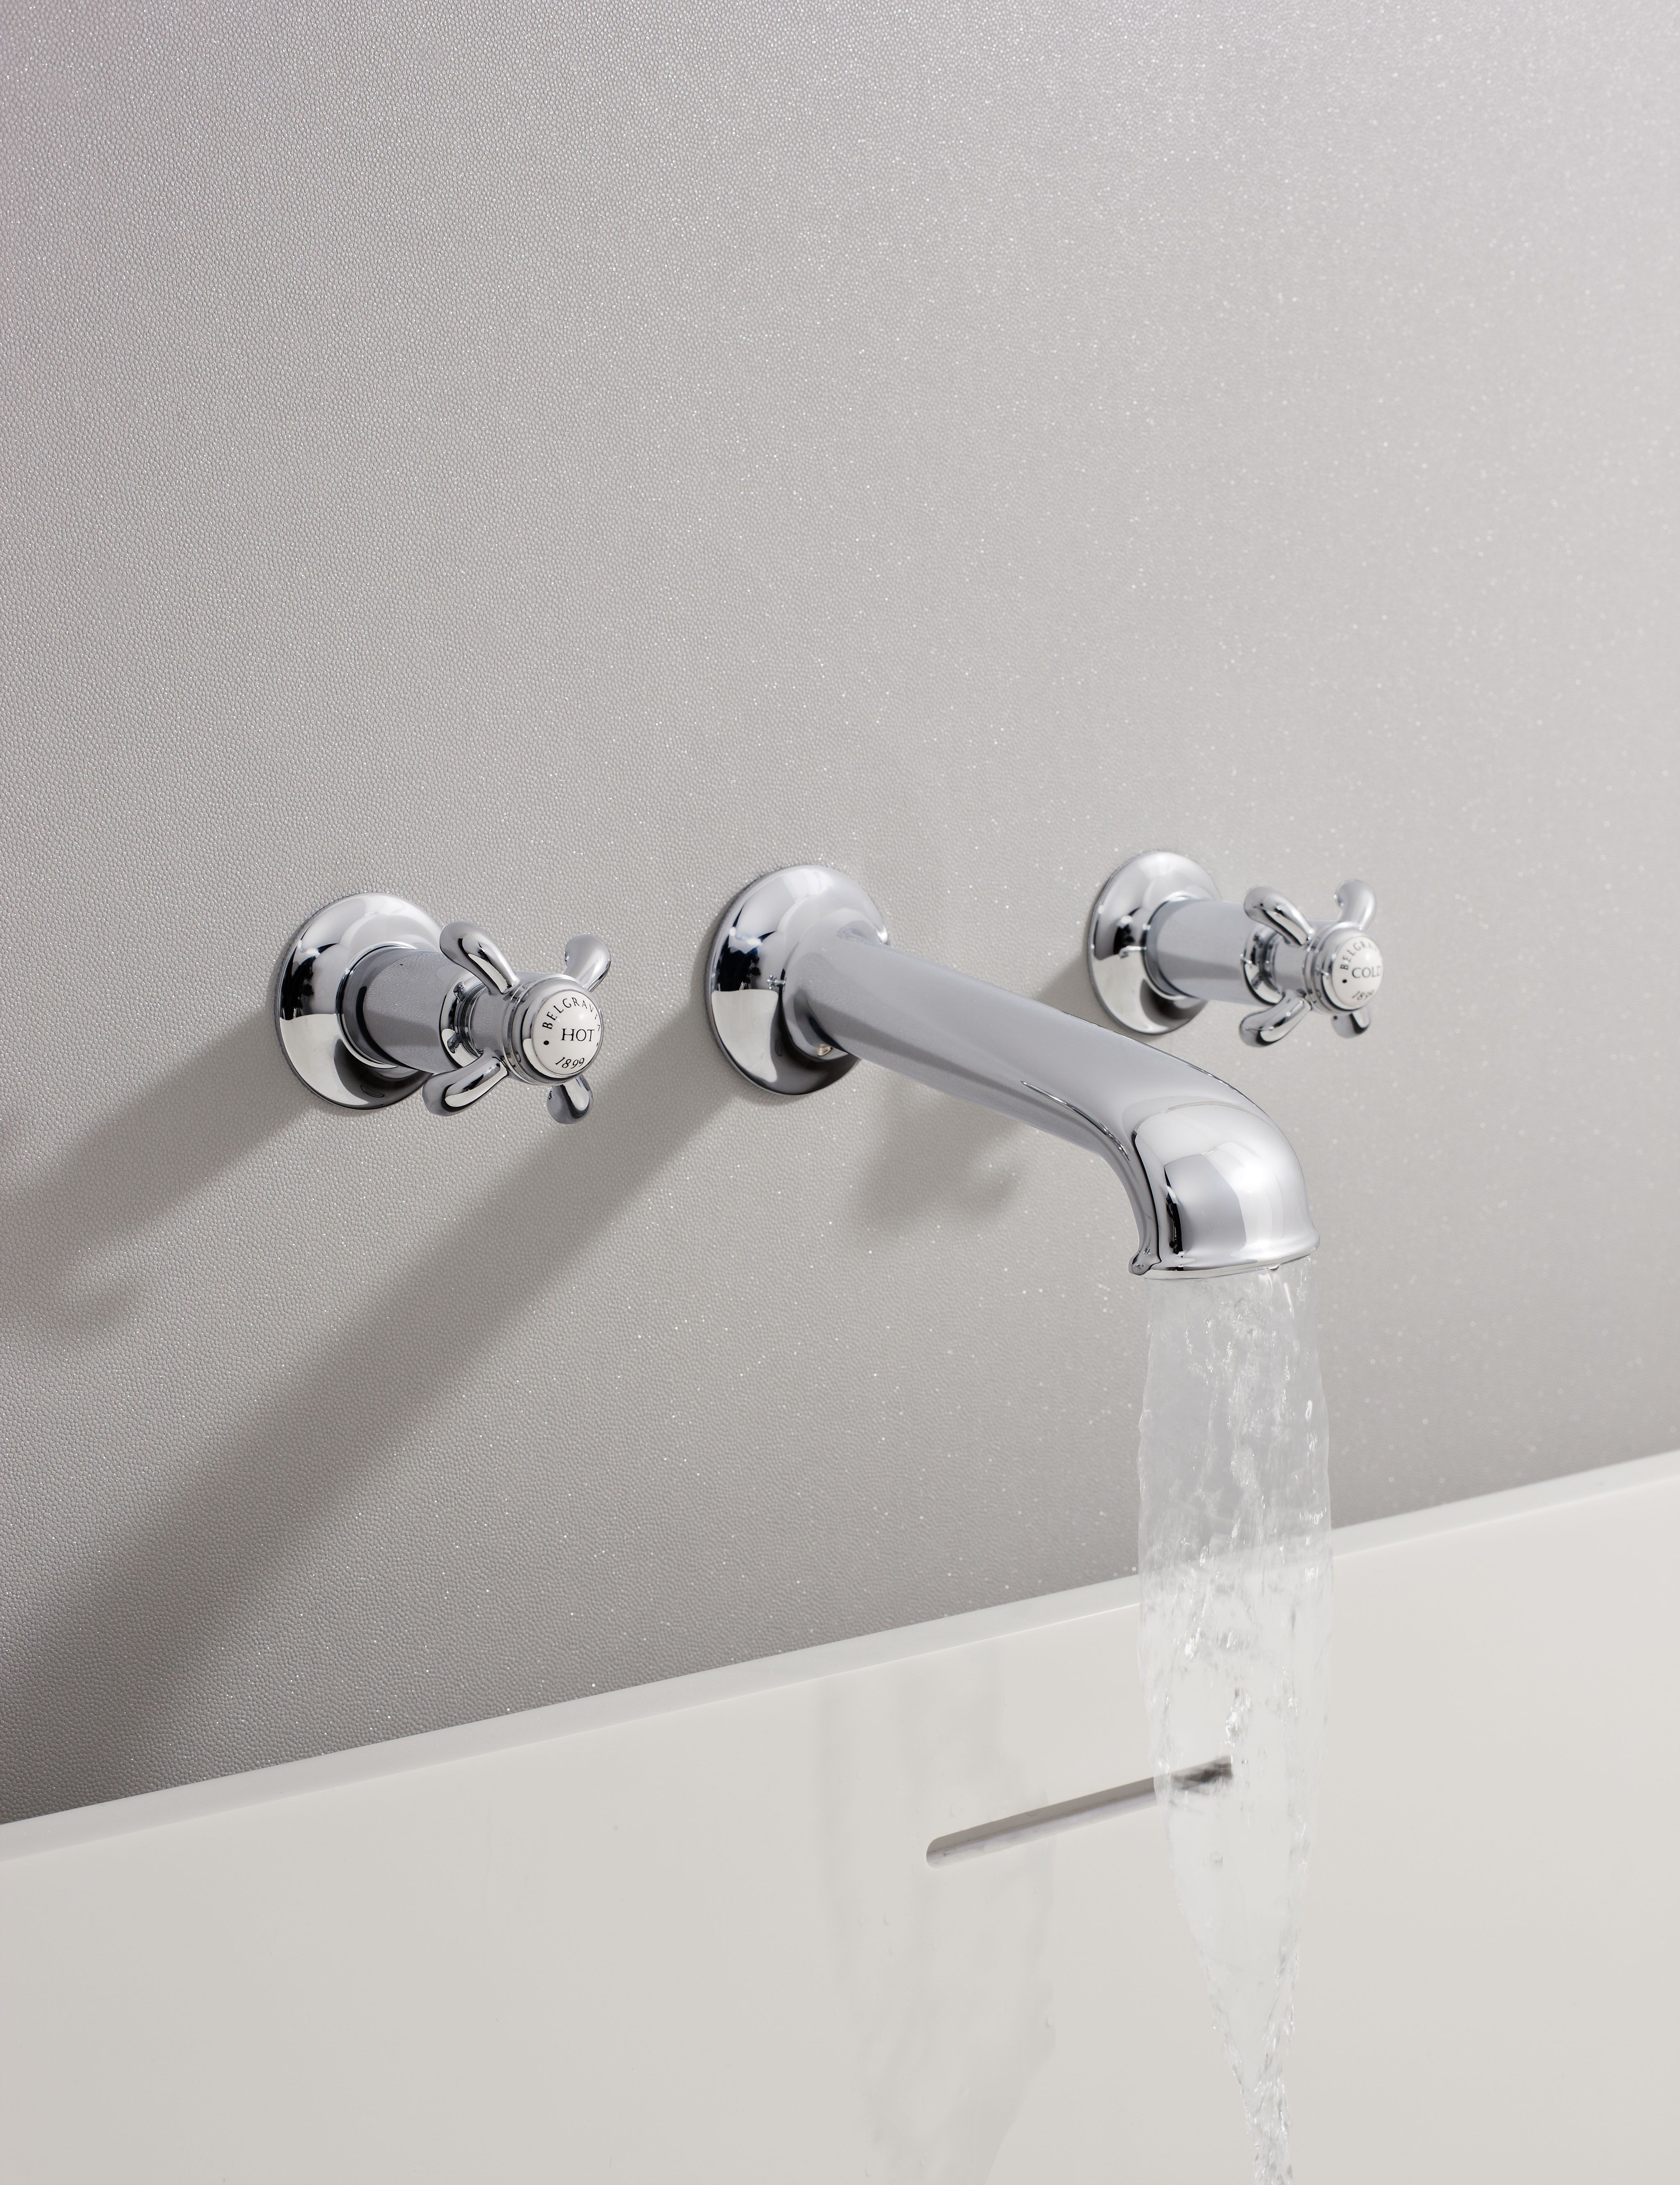 Belgravia Fleur De Lis Wall Mounted Bath Sprout With Wall Stop Taps From Crosswater Http Www Crosswater Co Uk Pr Traditional Bathroom Bathroom Taps Bath Taps